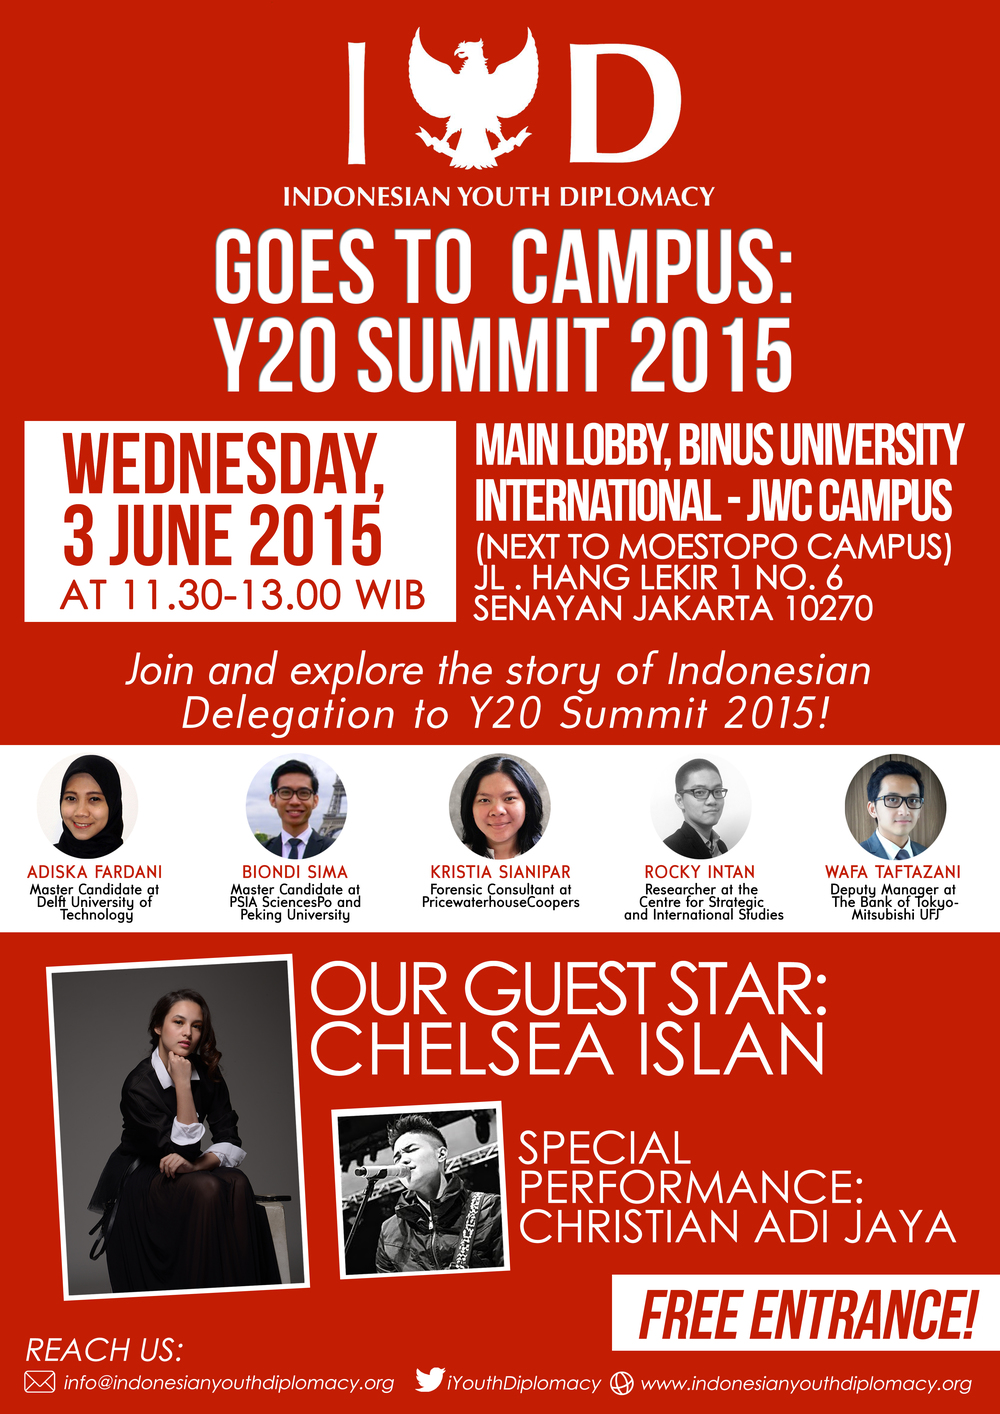 IYD Goes To Campus: Road to Y20 Summit 2015 Come and explore the story of Indonesian Delegation to Y20 Summit 2015! Our guest star Chelsea Islan will share with us, with special performance by Christian Adi Jaya. It's on Wednesday, 3 June 2015 at 11.30-13.00, Main Lobby of Binus International University. For further contact: @iYouthDiplomacy / info@indonesianyouthdiplomacy.org